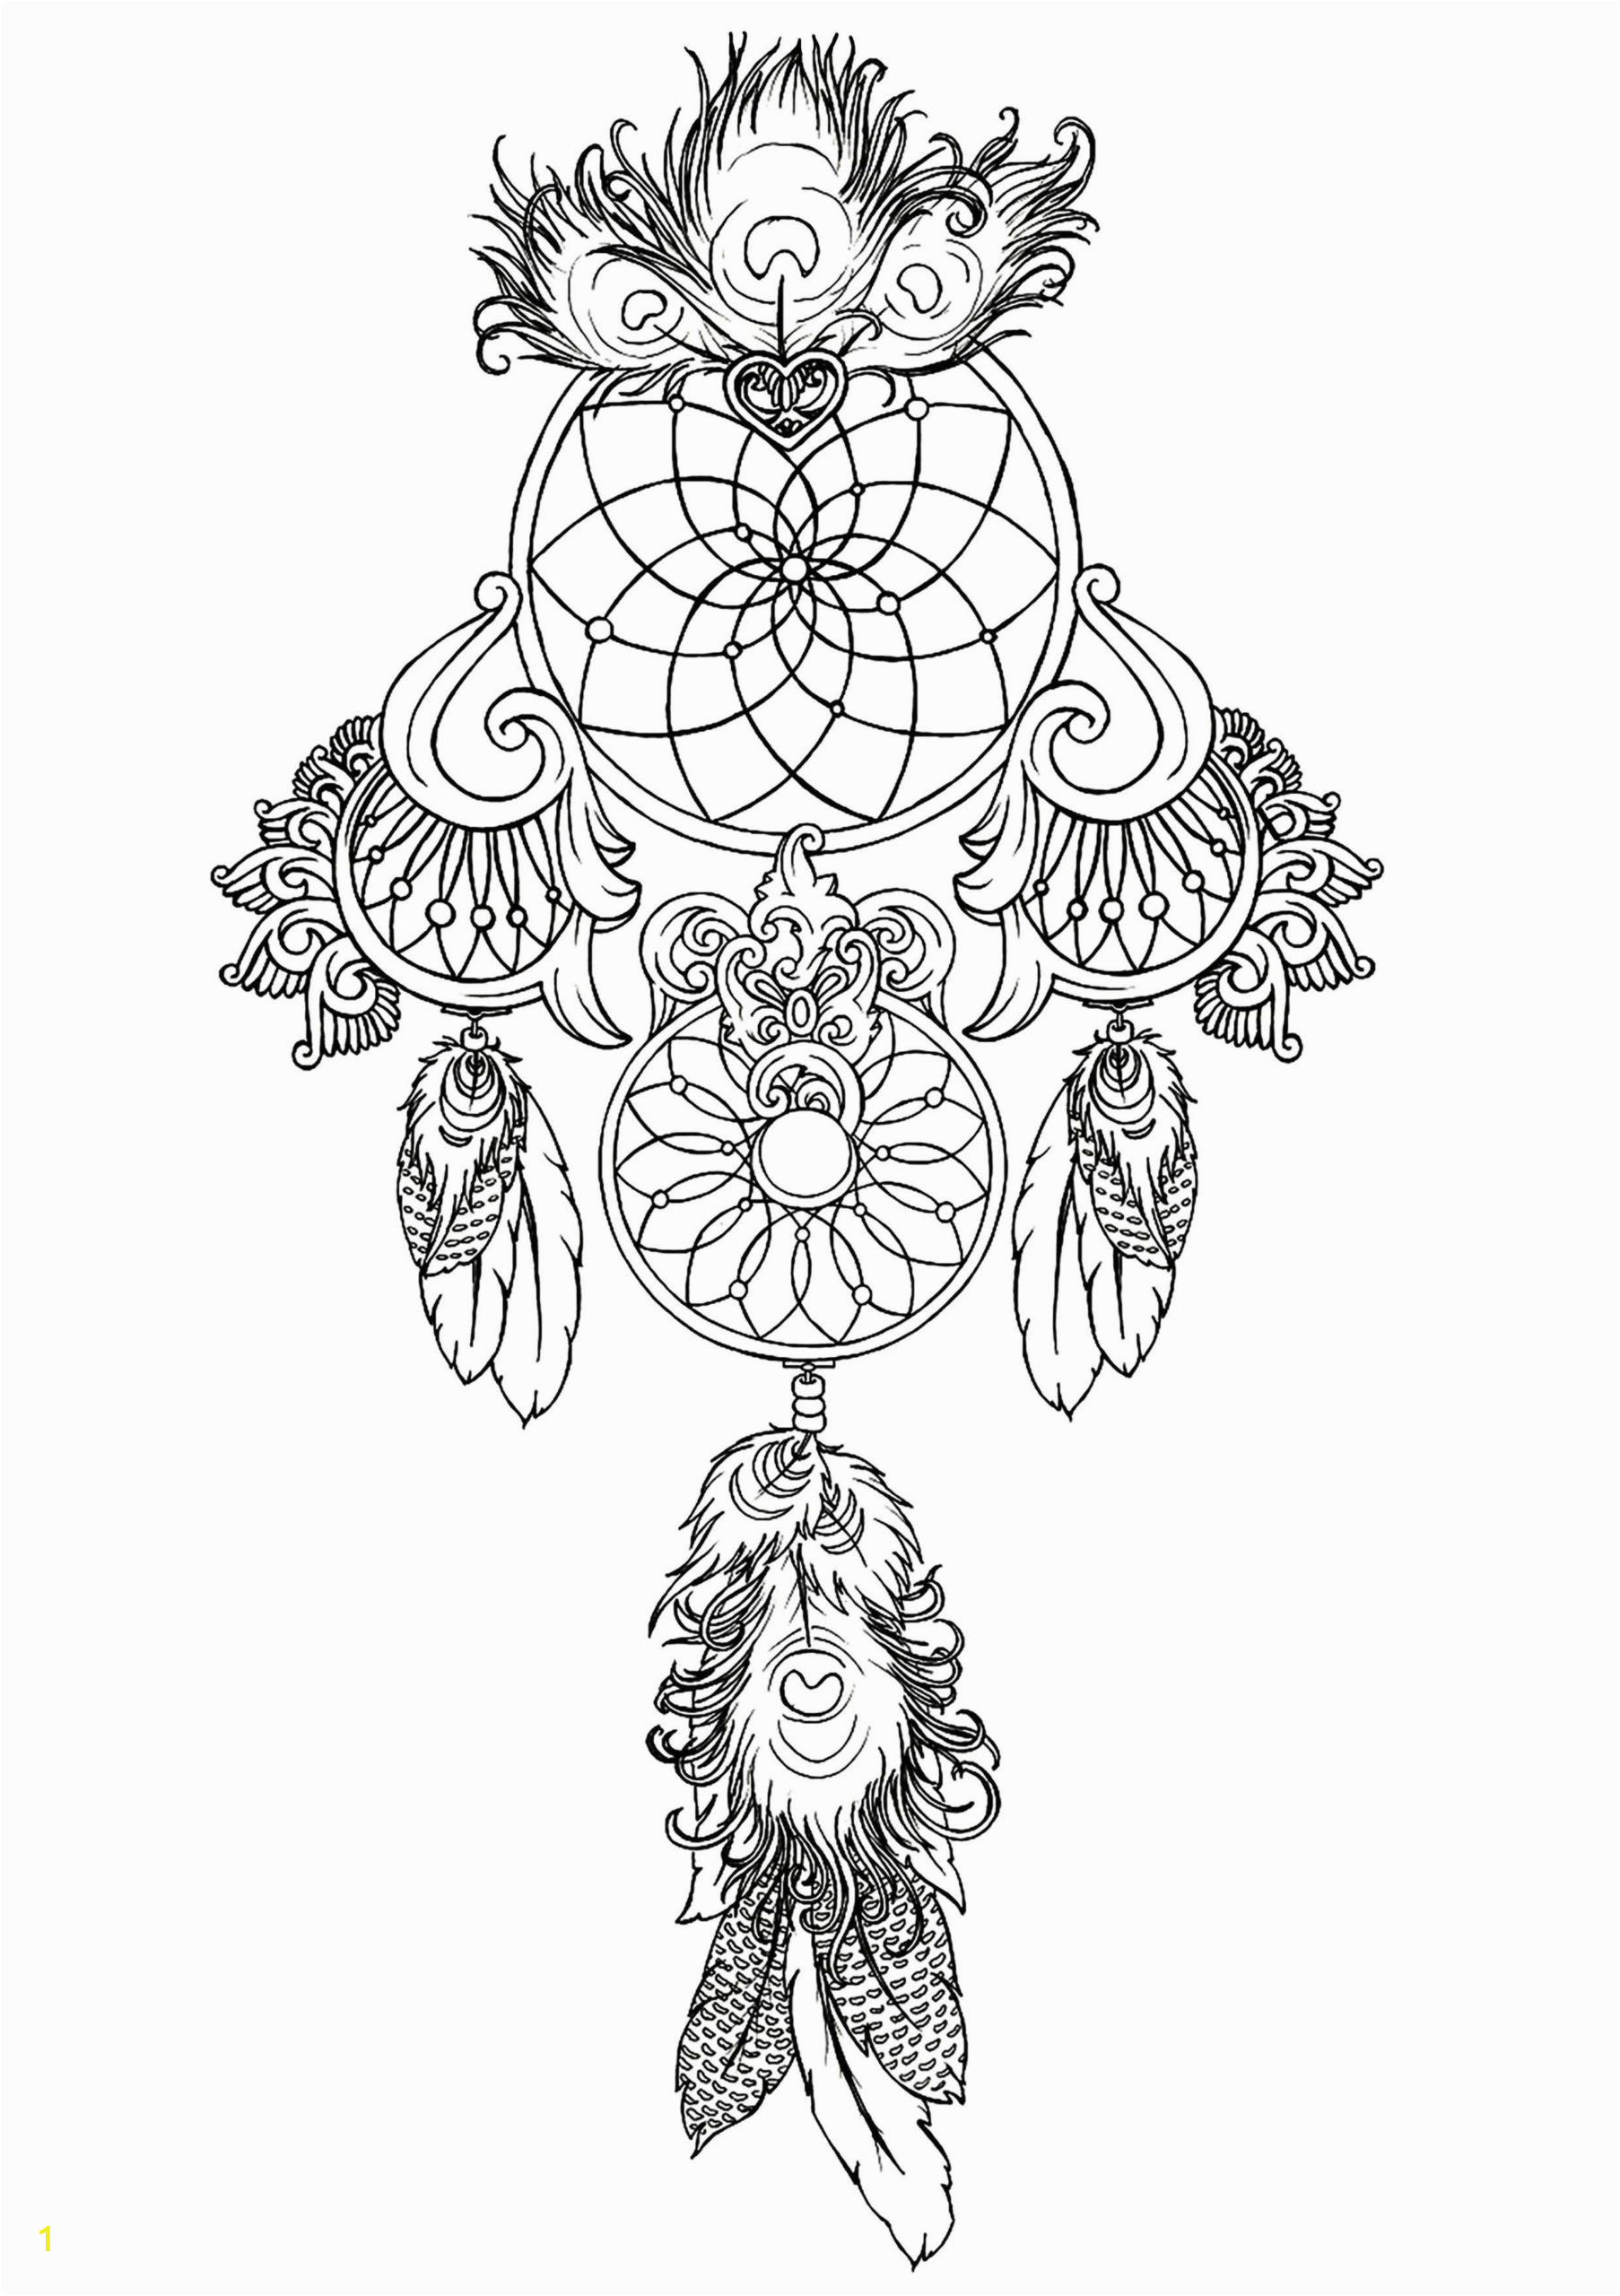 coloring pages for adults fox book pony detailed flower sunglasses page cuties kids fun cute to print apple advanced mini books tiger owl mandala lightning mcqueen lion baby horse